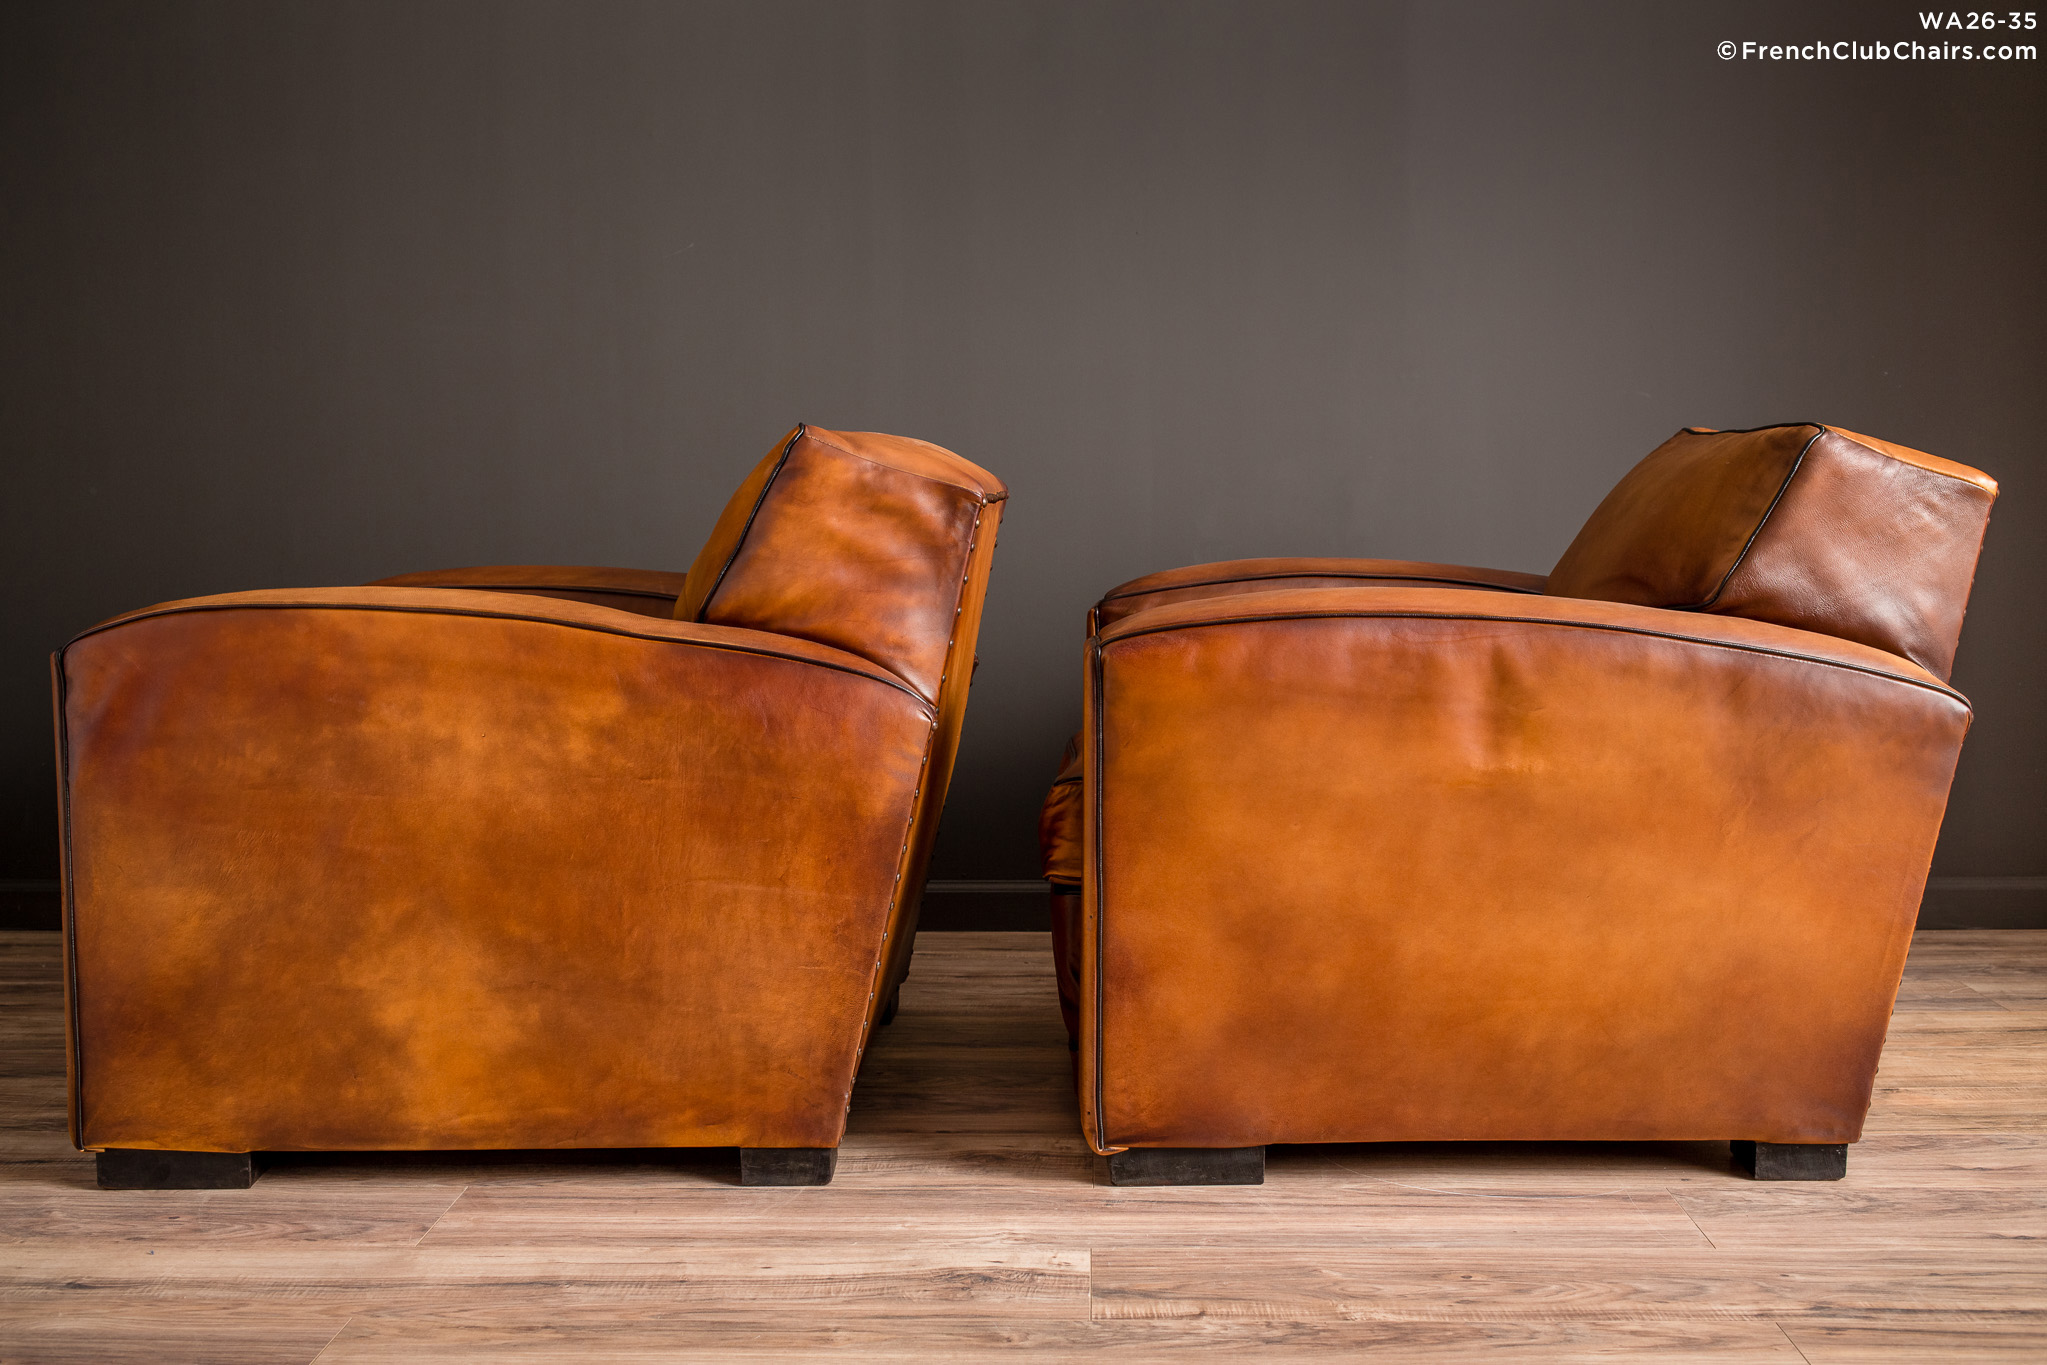 WA_26-35_Churchill_Giant_Square_Pair_R_4LT-v01-williams-antiks-leather-french-club-chair-wa_fcccom